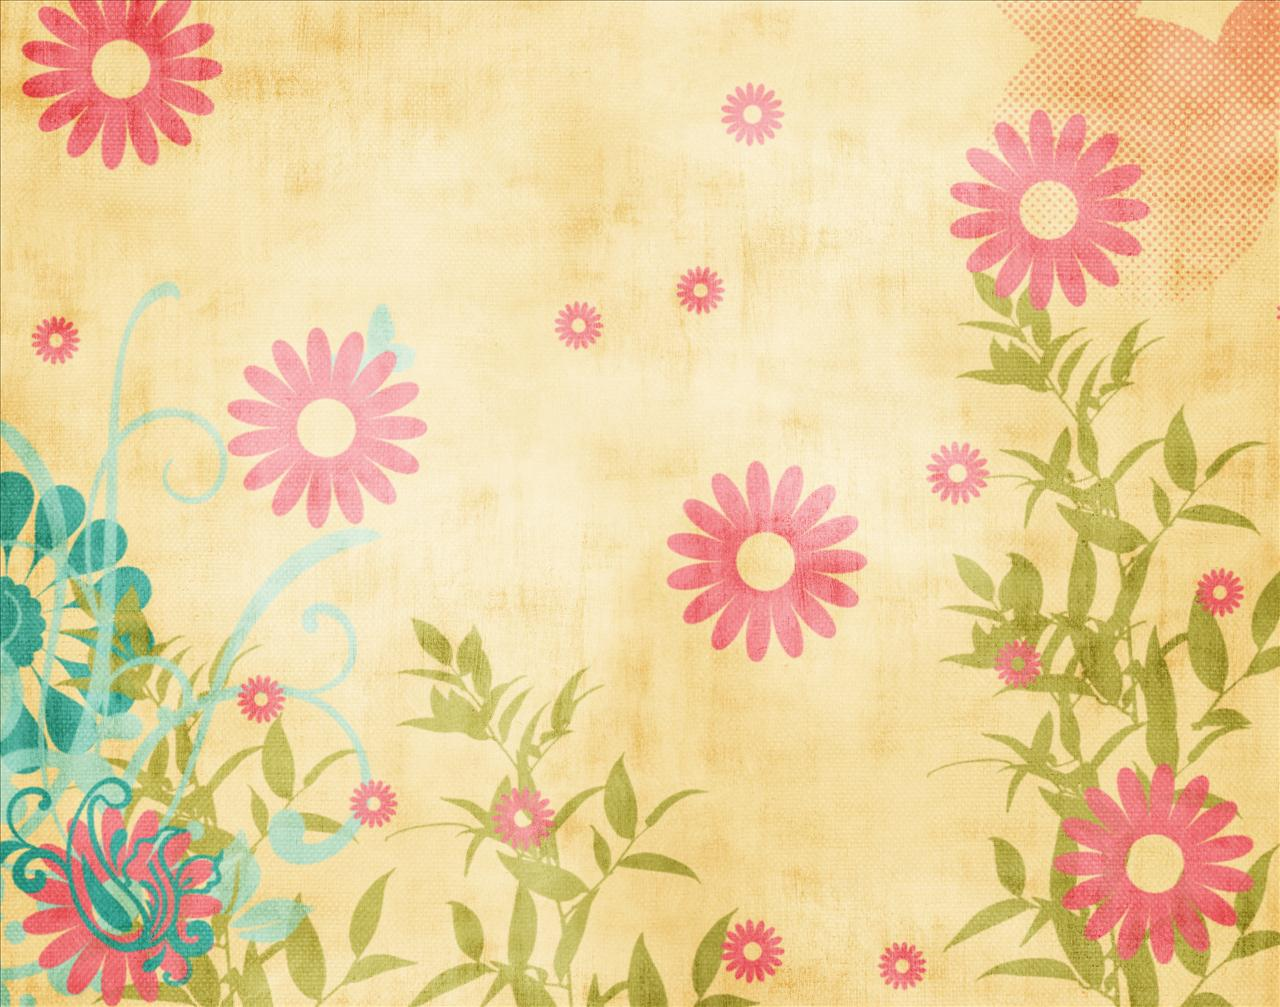 Summer flowers spring PPT Backgrounds